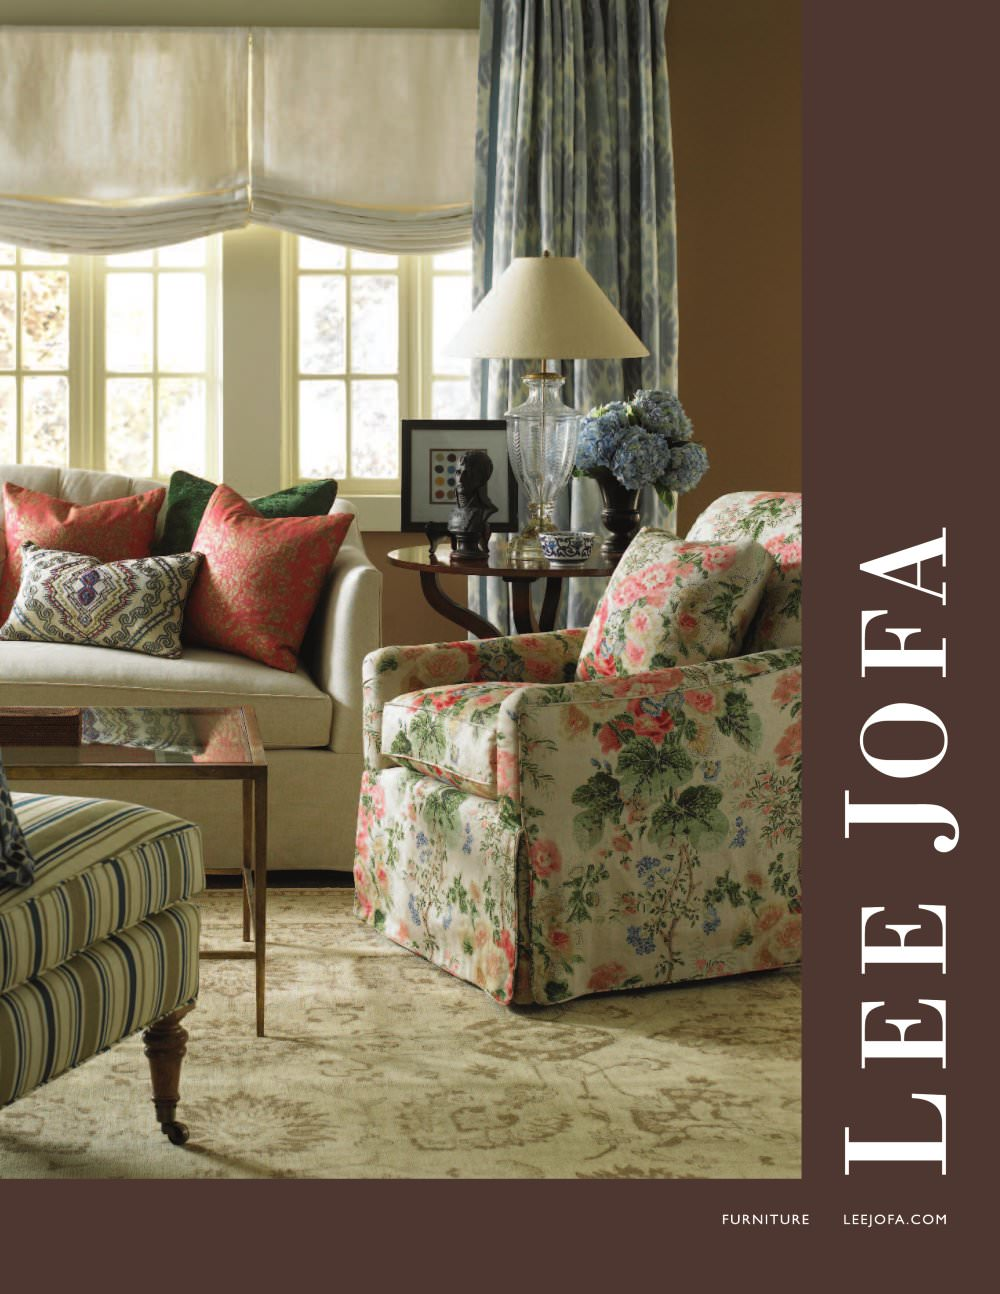 Lee Jofa Furniture Catalog 2017 1 82 Pages